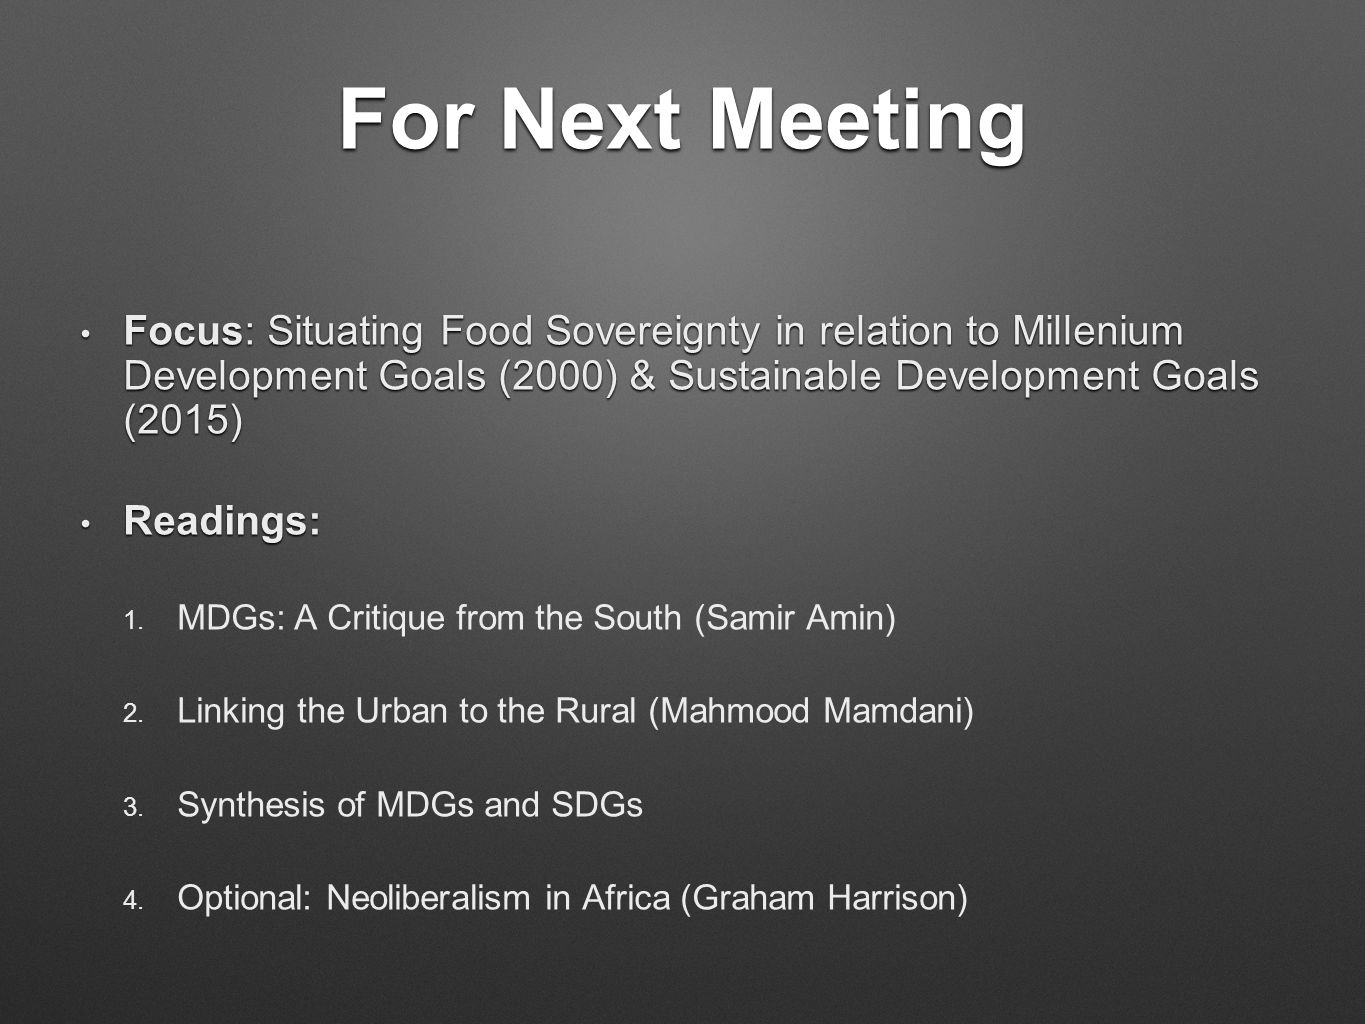 For Next Meeting Focus: Situating Food Sovereignty in relation to Millenium Development Goals (2000) & Sustainable Development Goals (2015) Focus: Situating Food Sovereignty in relation to Millenium Development Goals (2000) & Sustainable Development Goals (2015) Readings: Readings: 1.